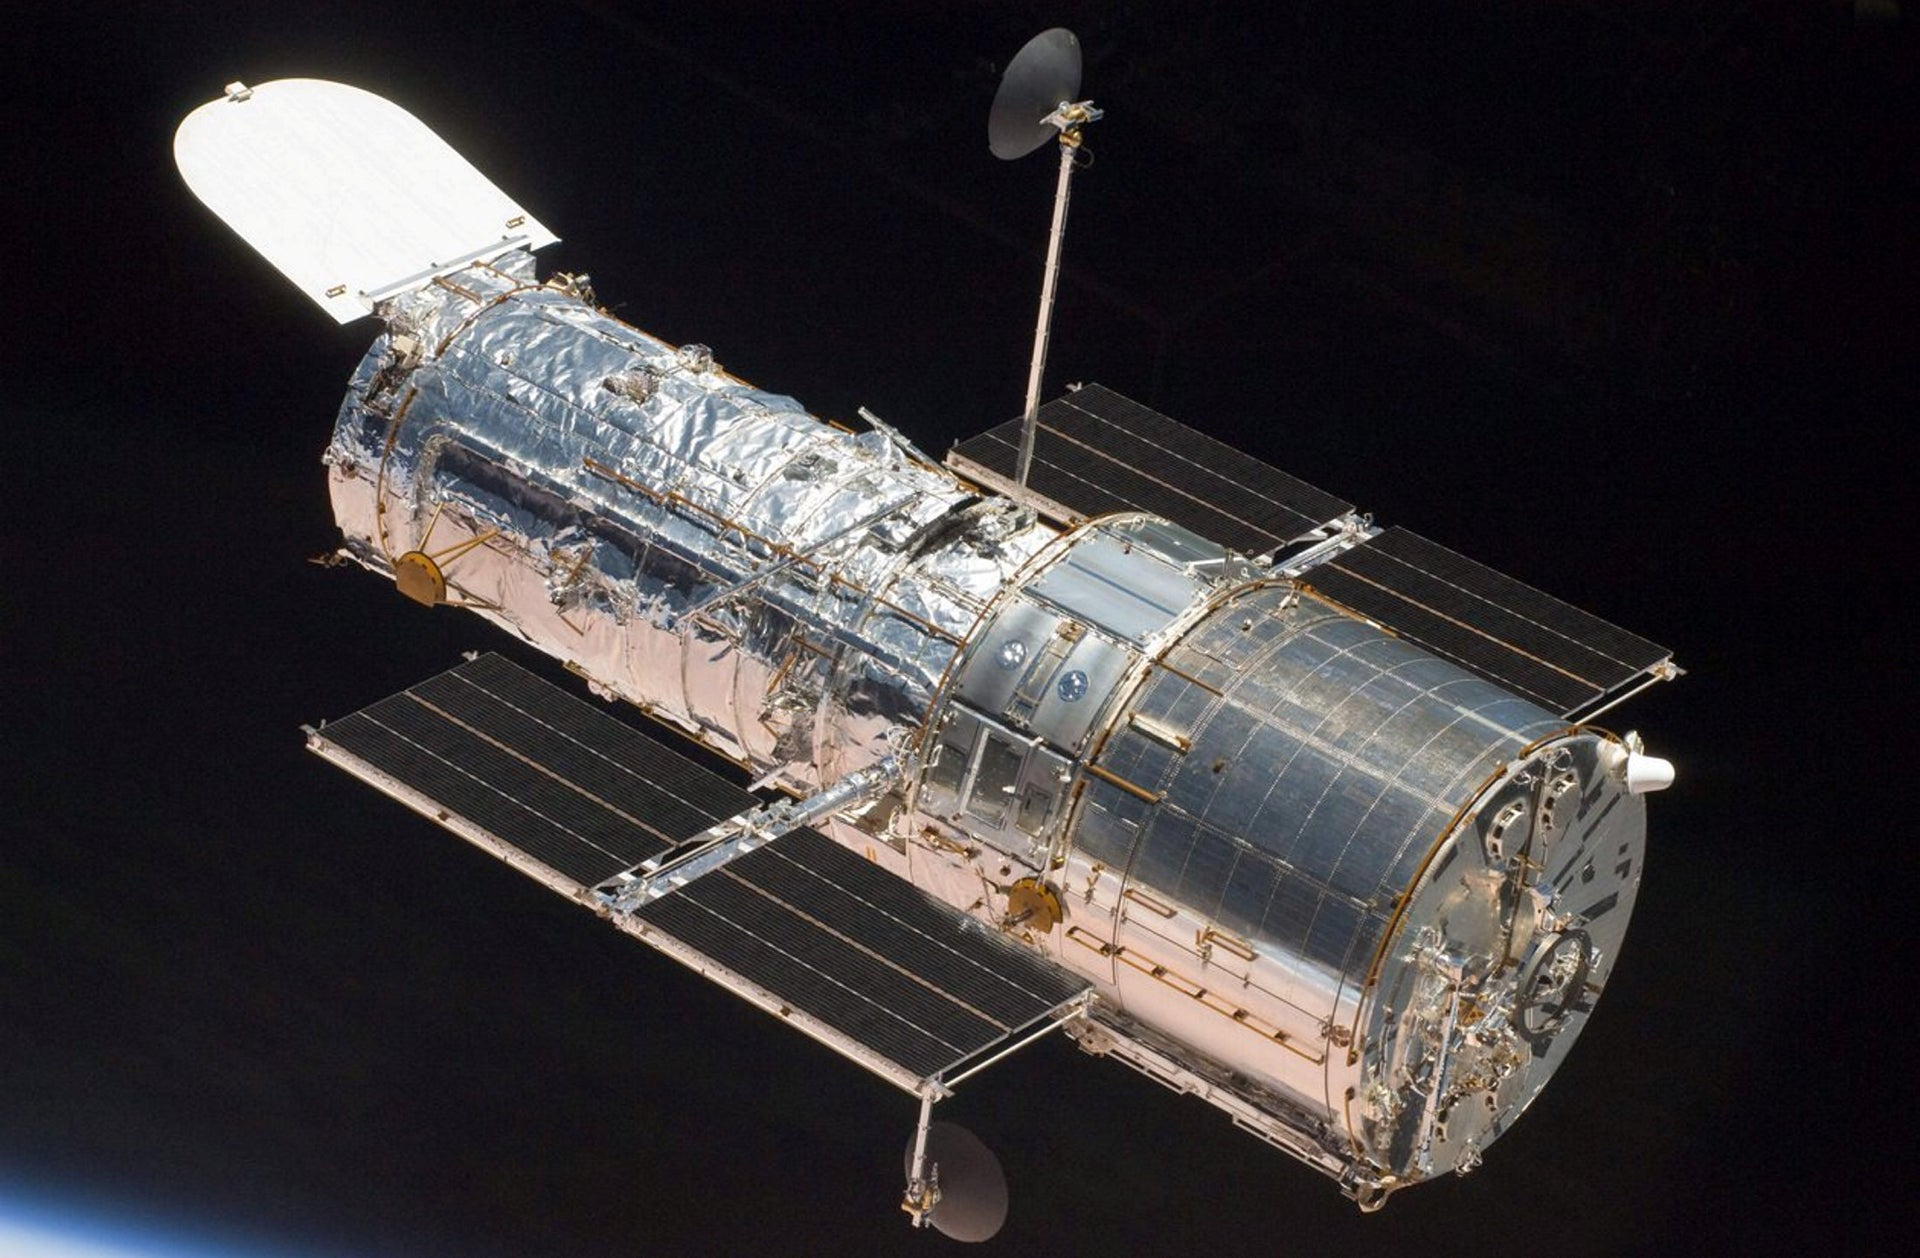 This image provided by NASA shows the Hubble Space Telescope after it's release from the Space Shuttle Atlantis Tuesday May 19, 2009